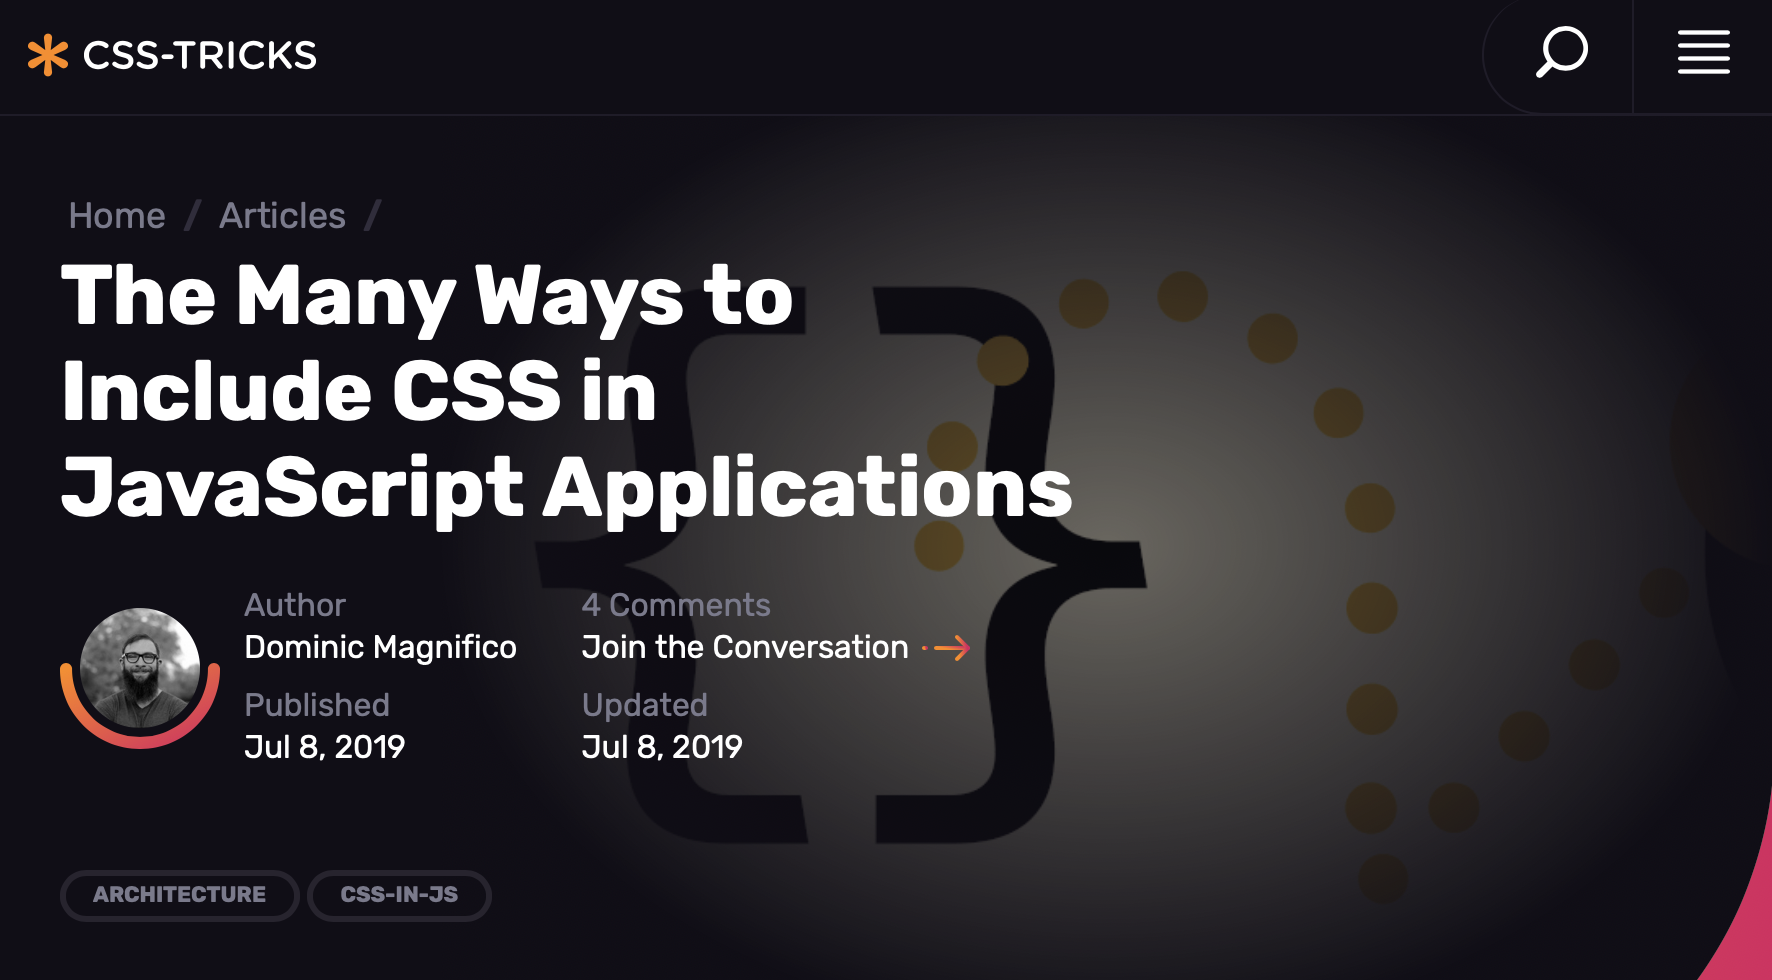 Article Screenshot The Many Ways to Include CSS in JavaScript Applications